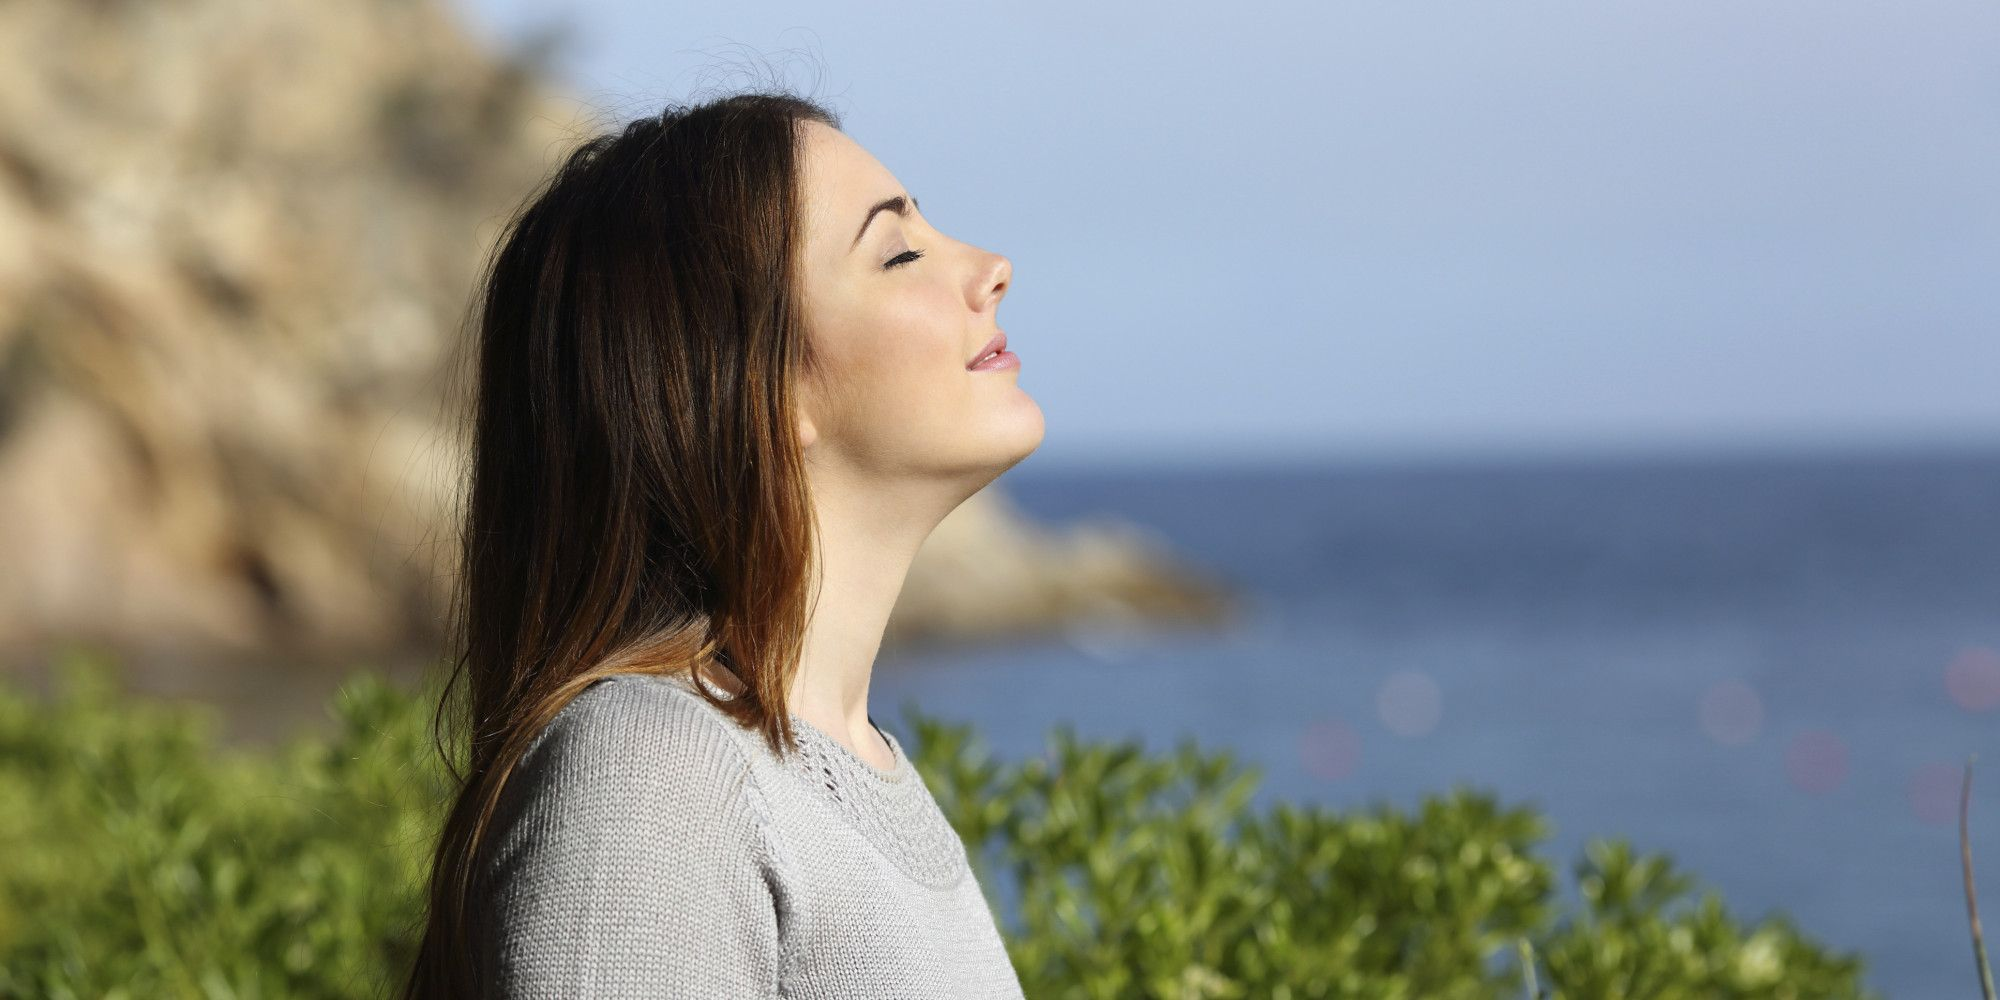 lose weight by breathing